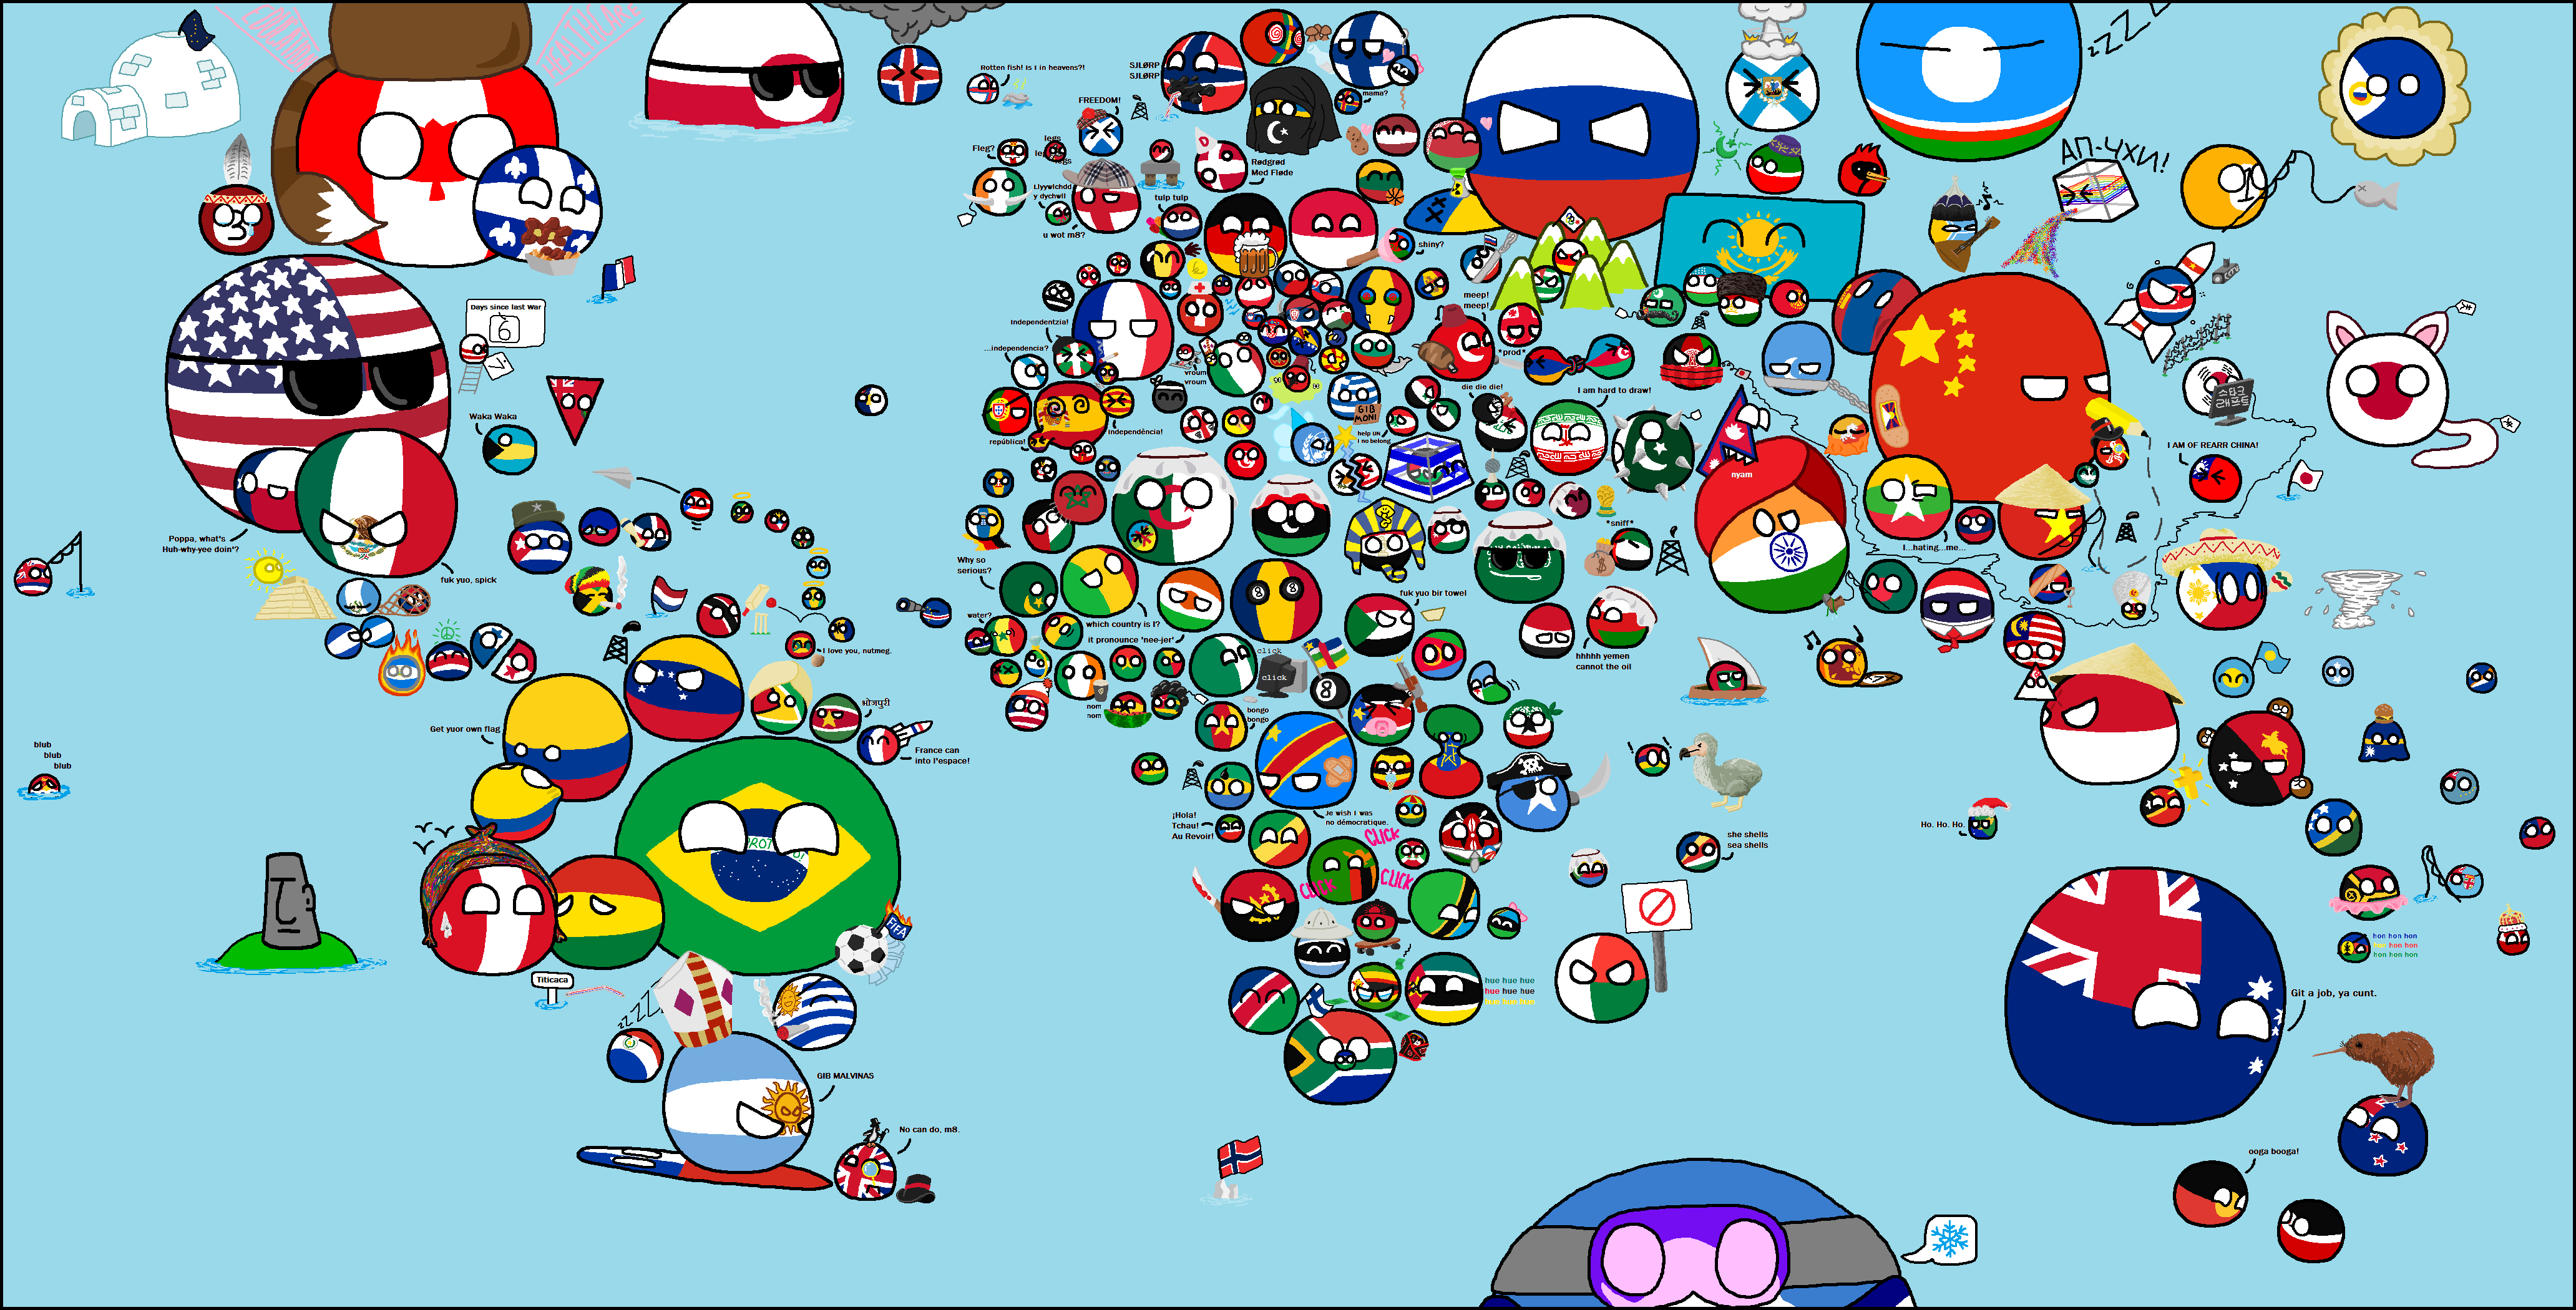 Suggestions online images of polandball world polandball world archivo polandball world i png gumiabroncs Choice Image